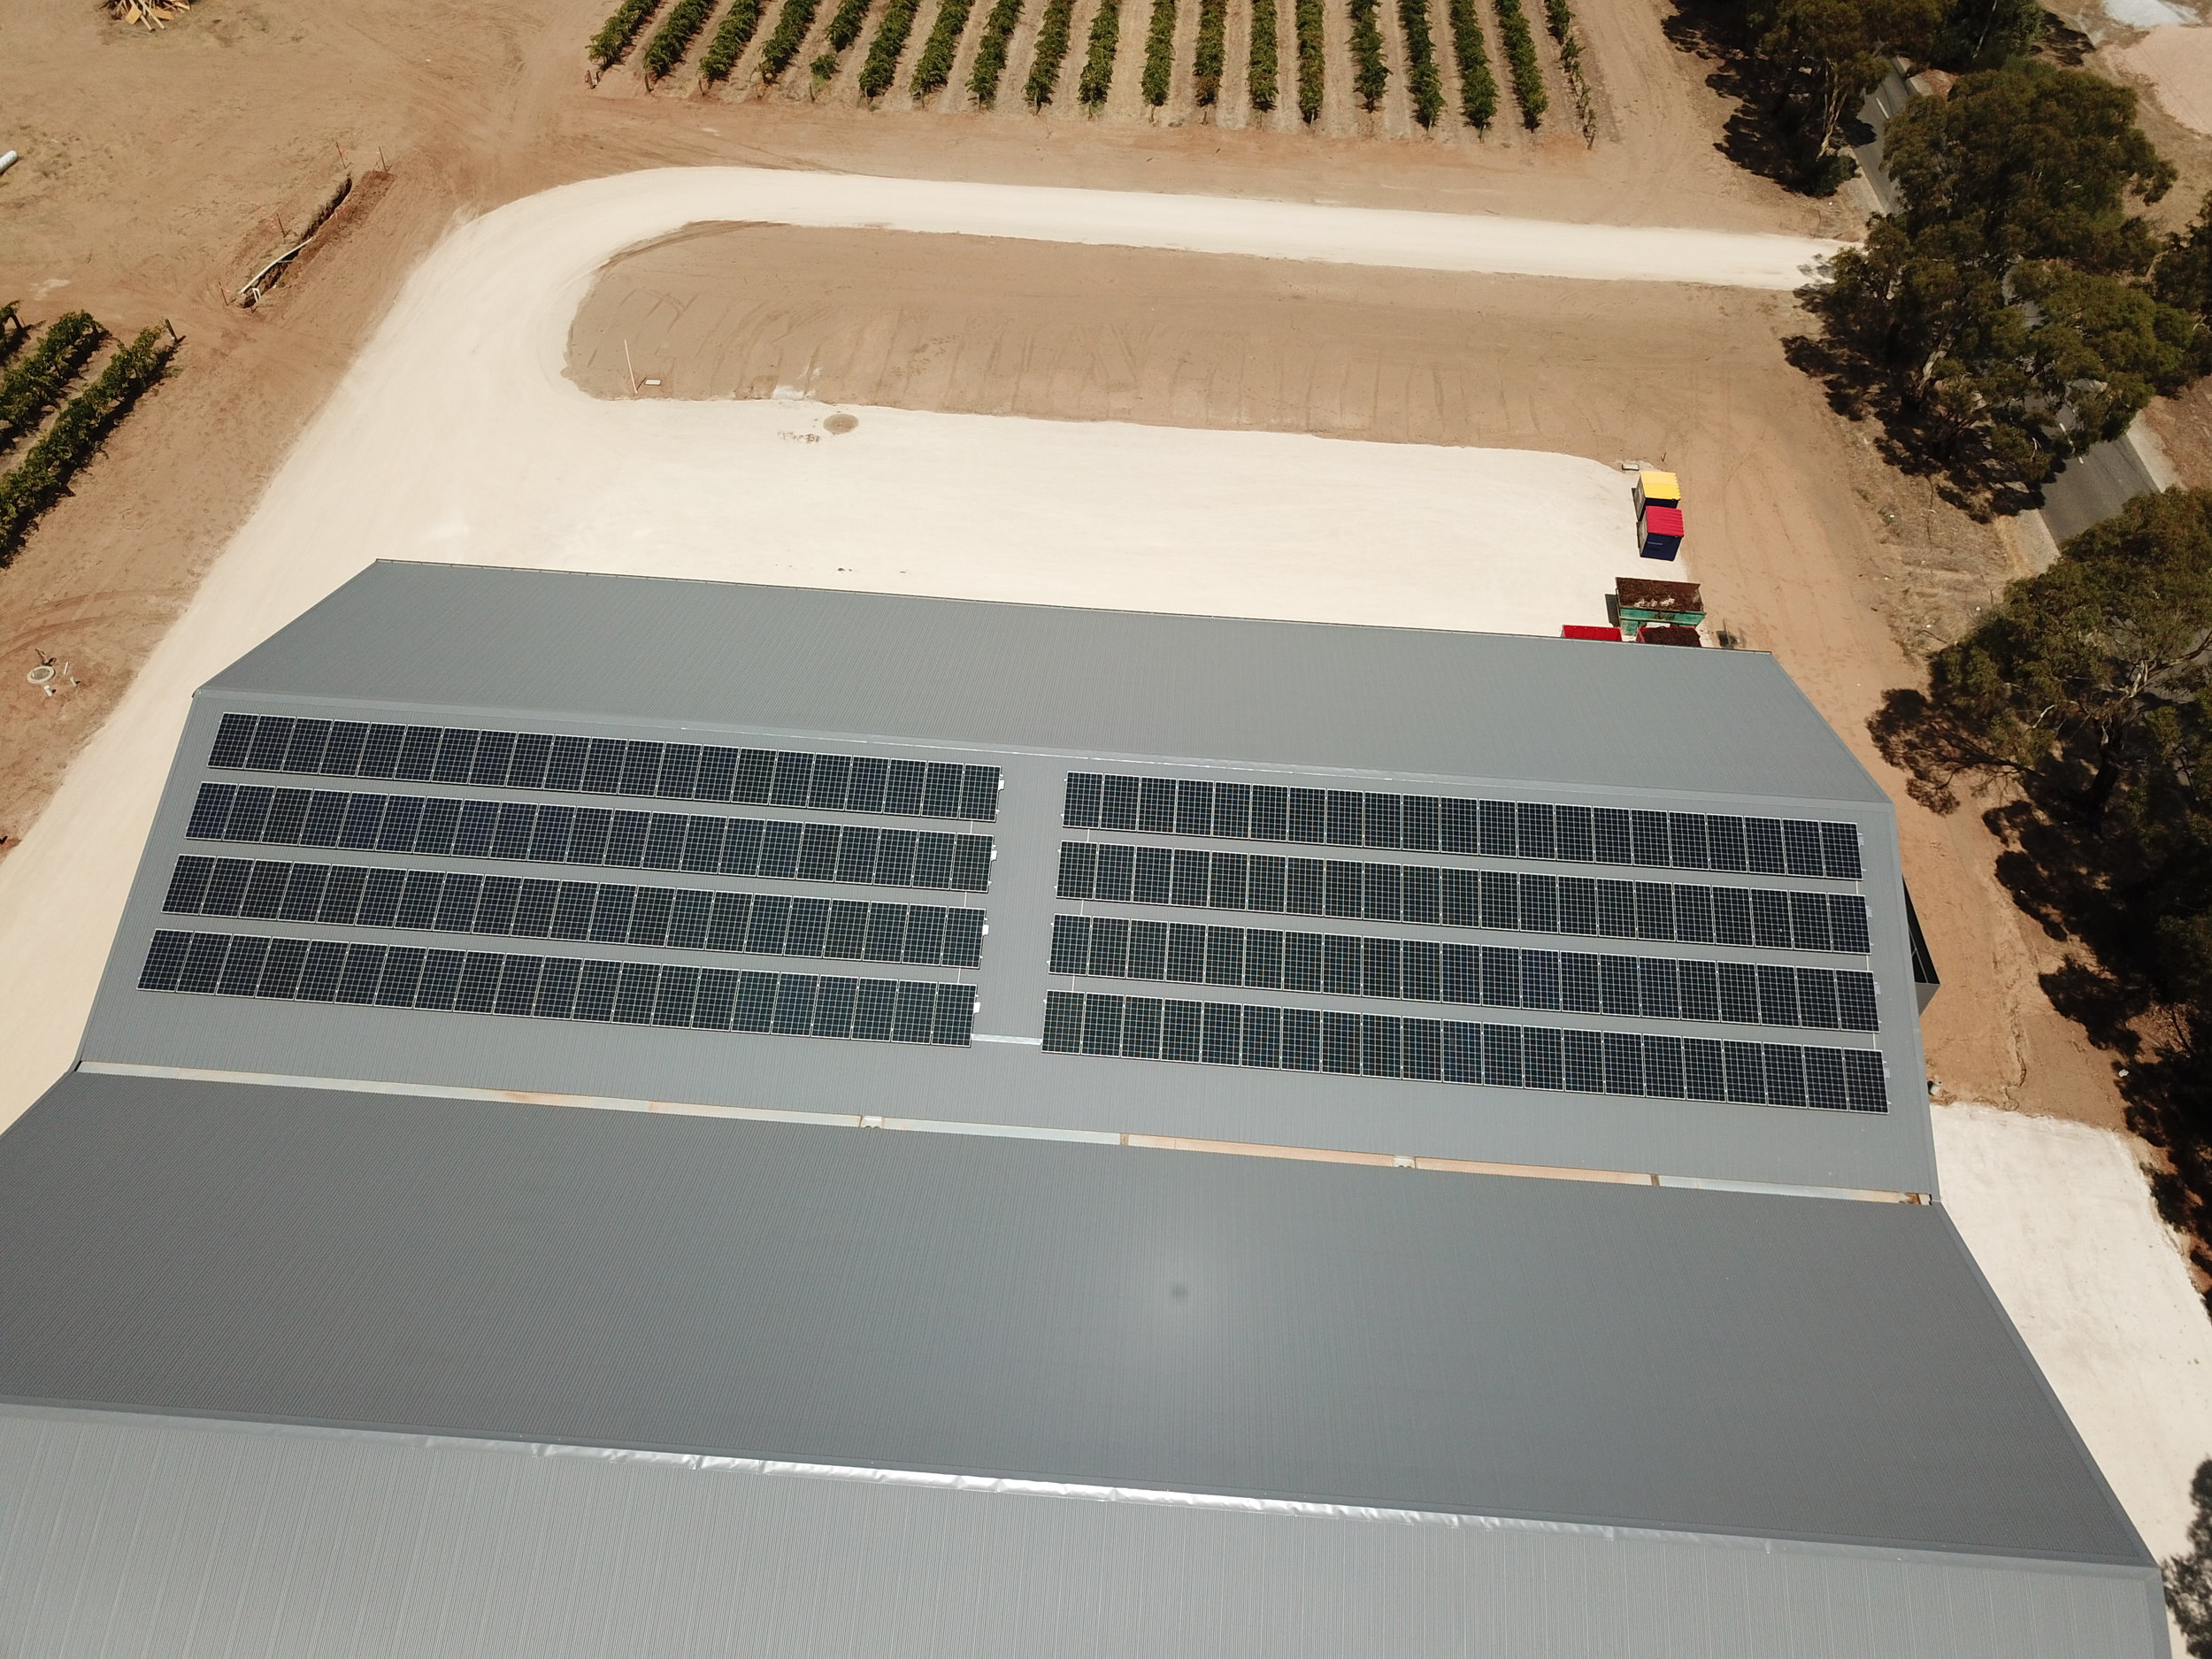 50kWp PV with Trina 300w PV Modules + Fronius Inverters